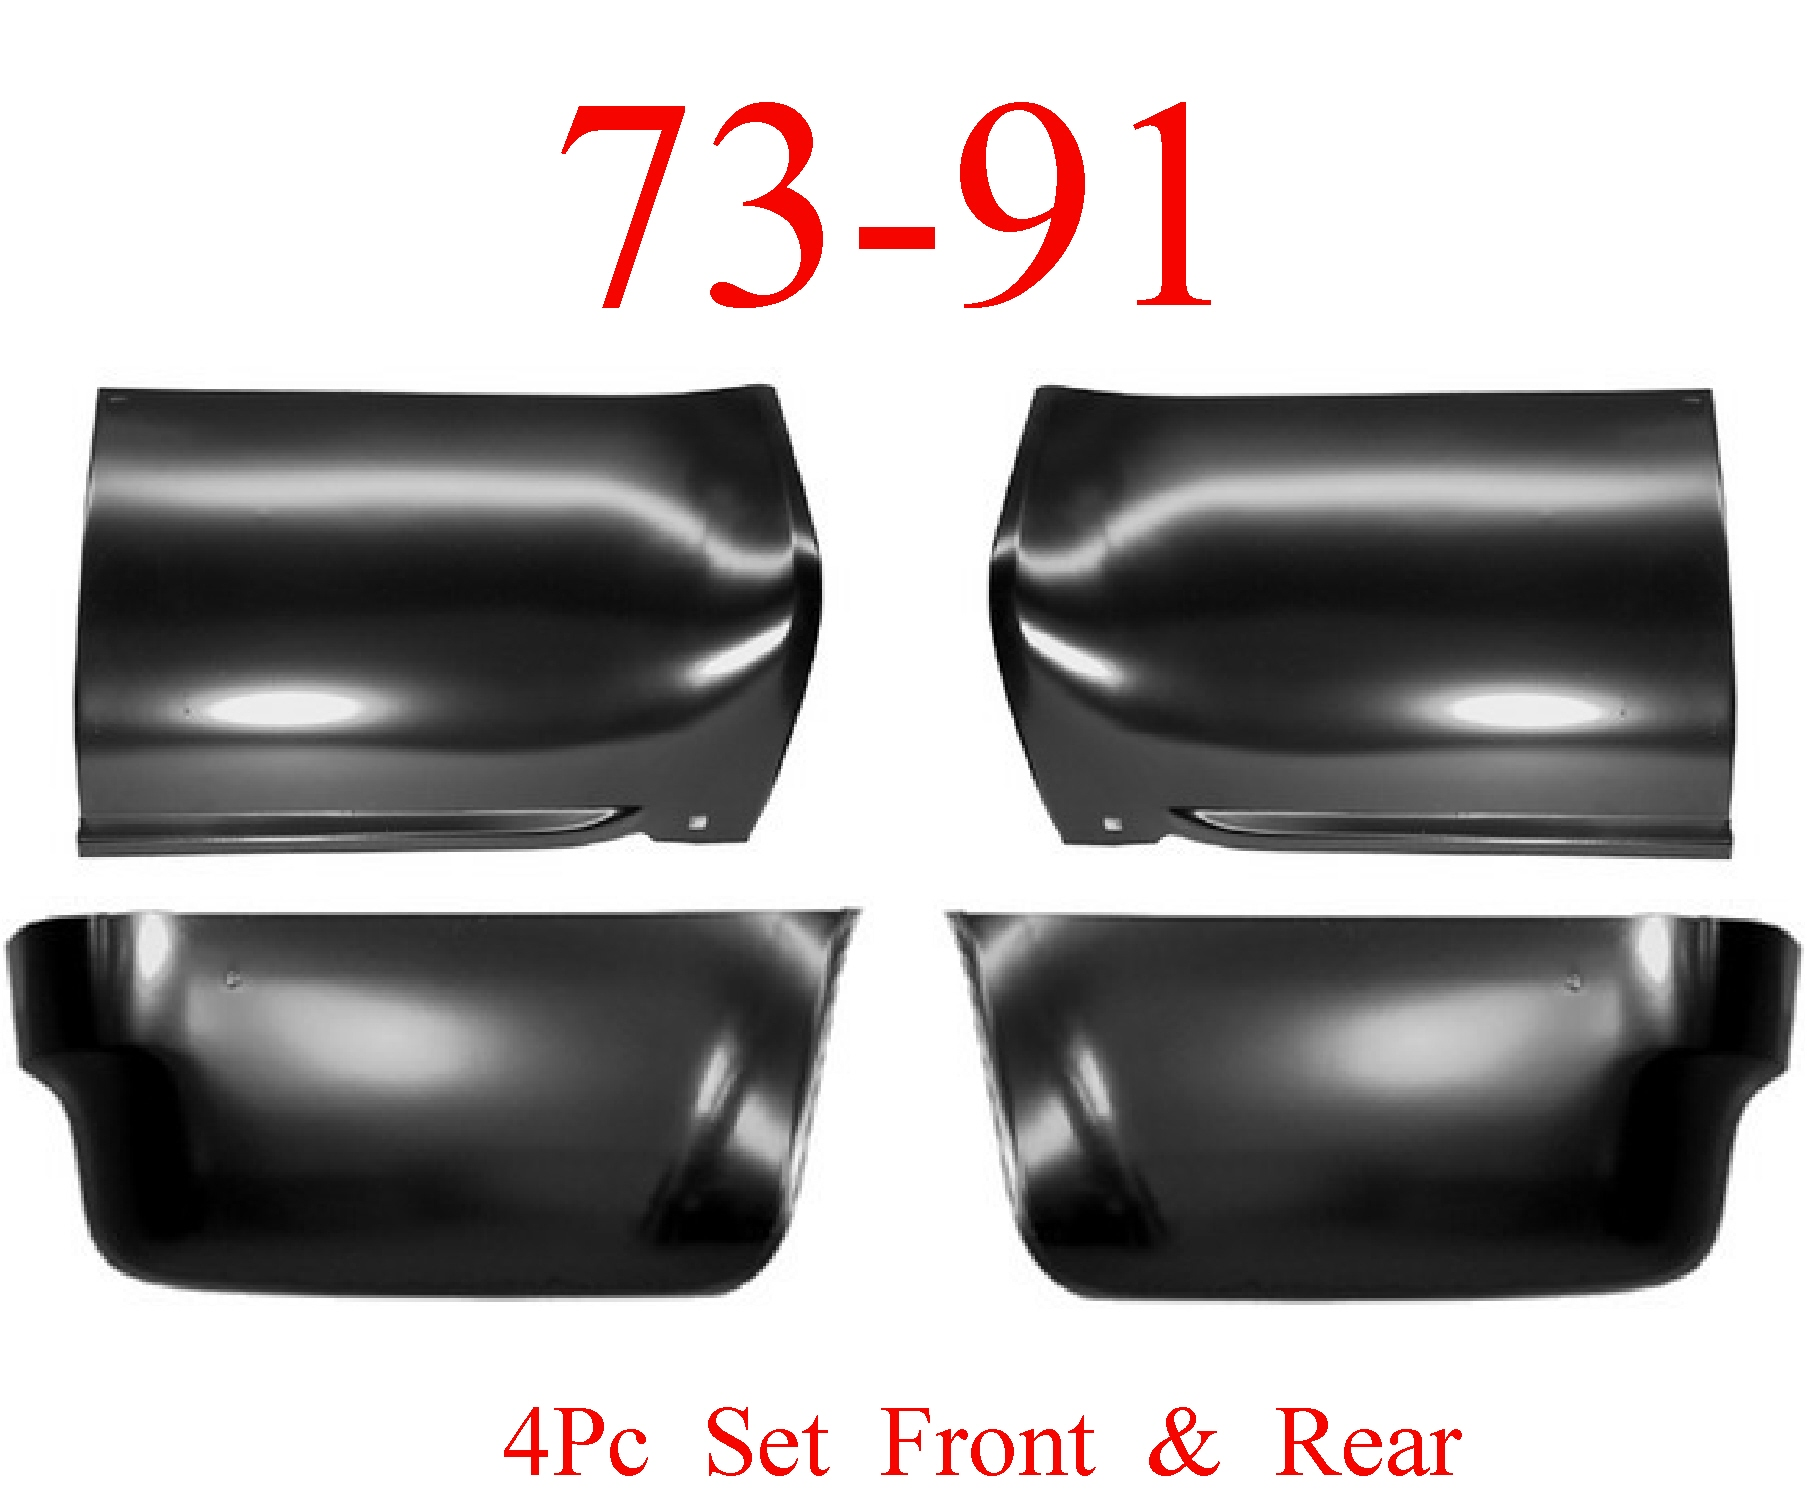 73-91 Chevy Blazer 4Pc Front Lower & Rear Lower Bed Panels Kit